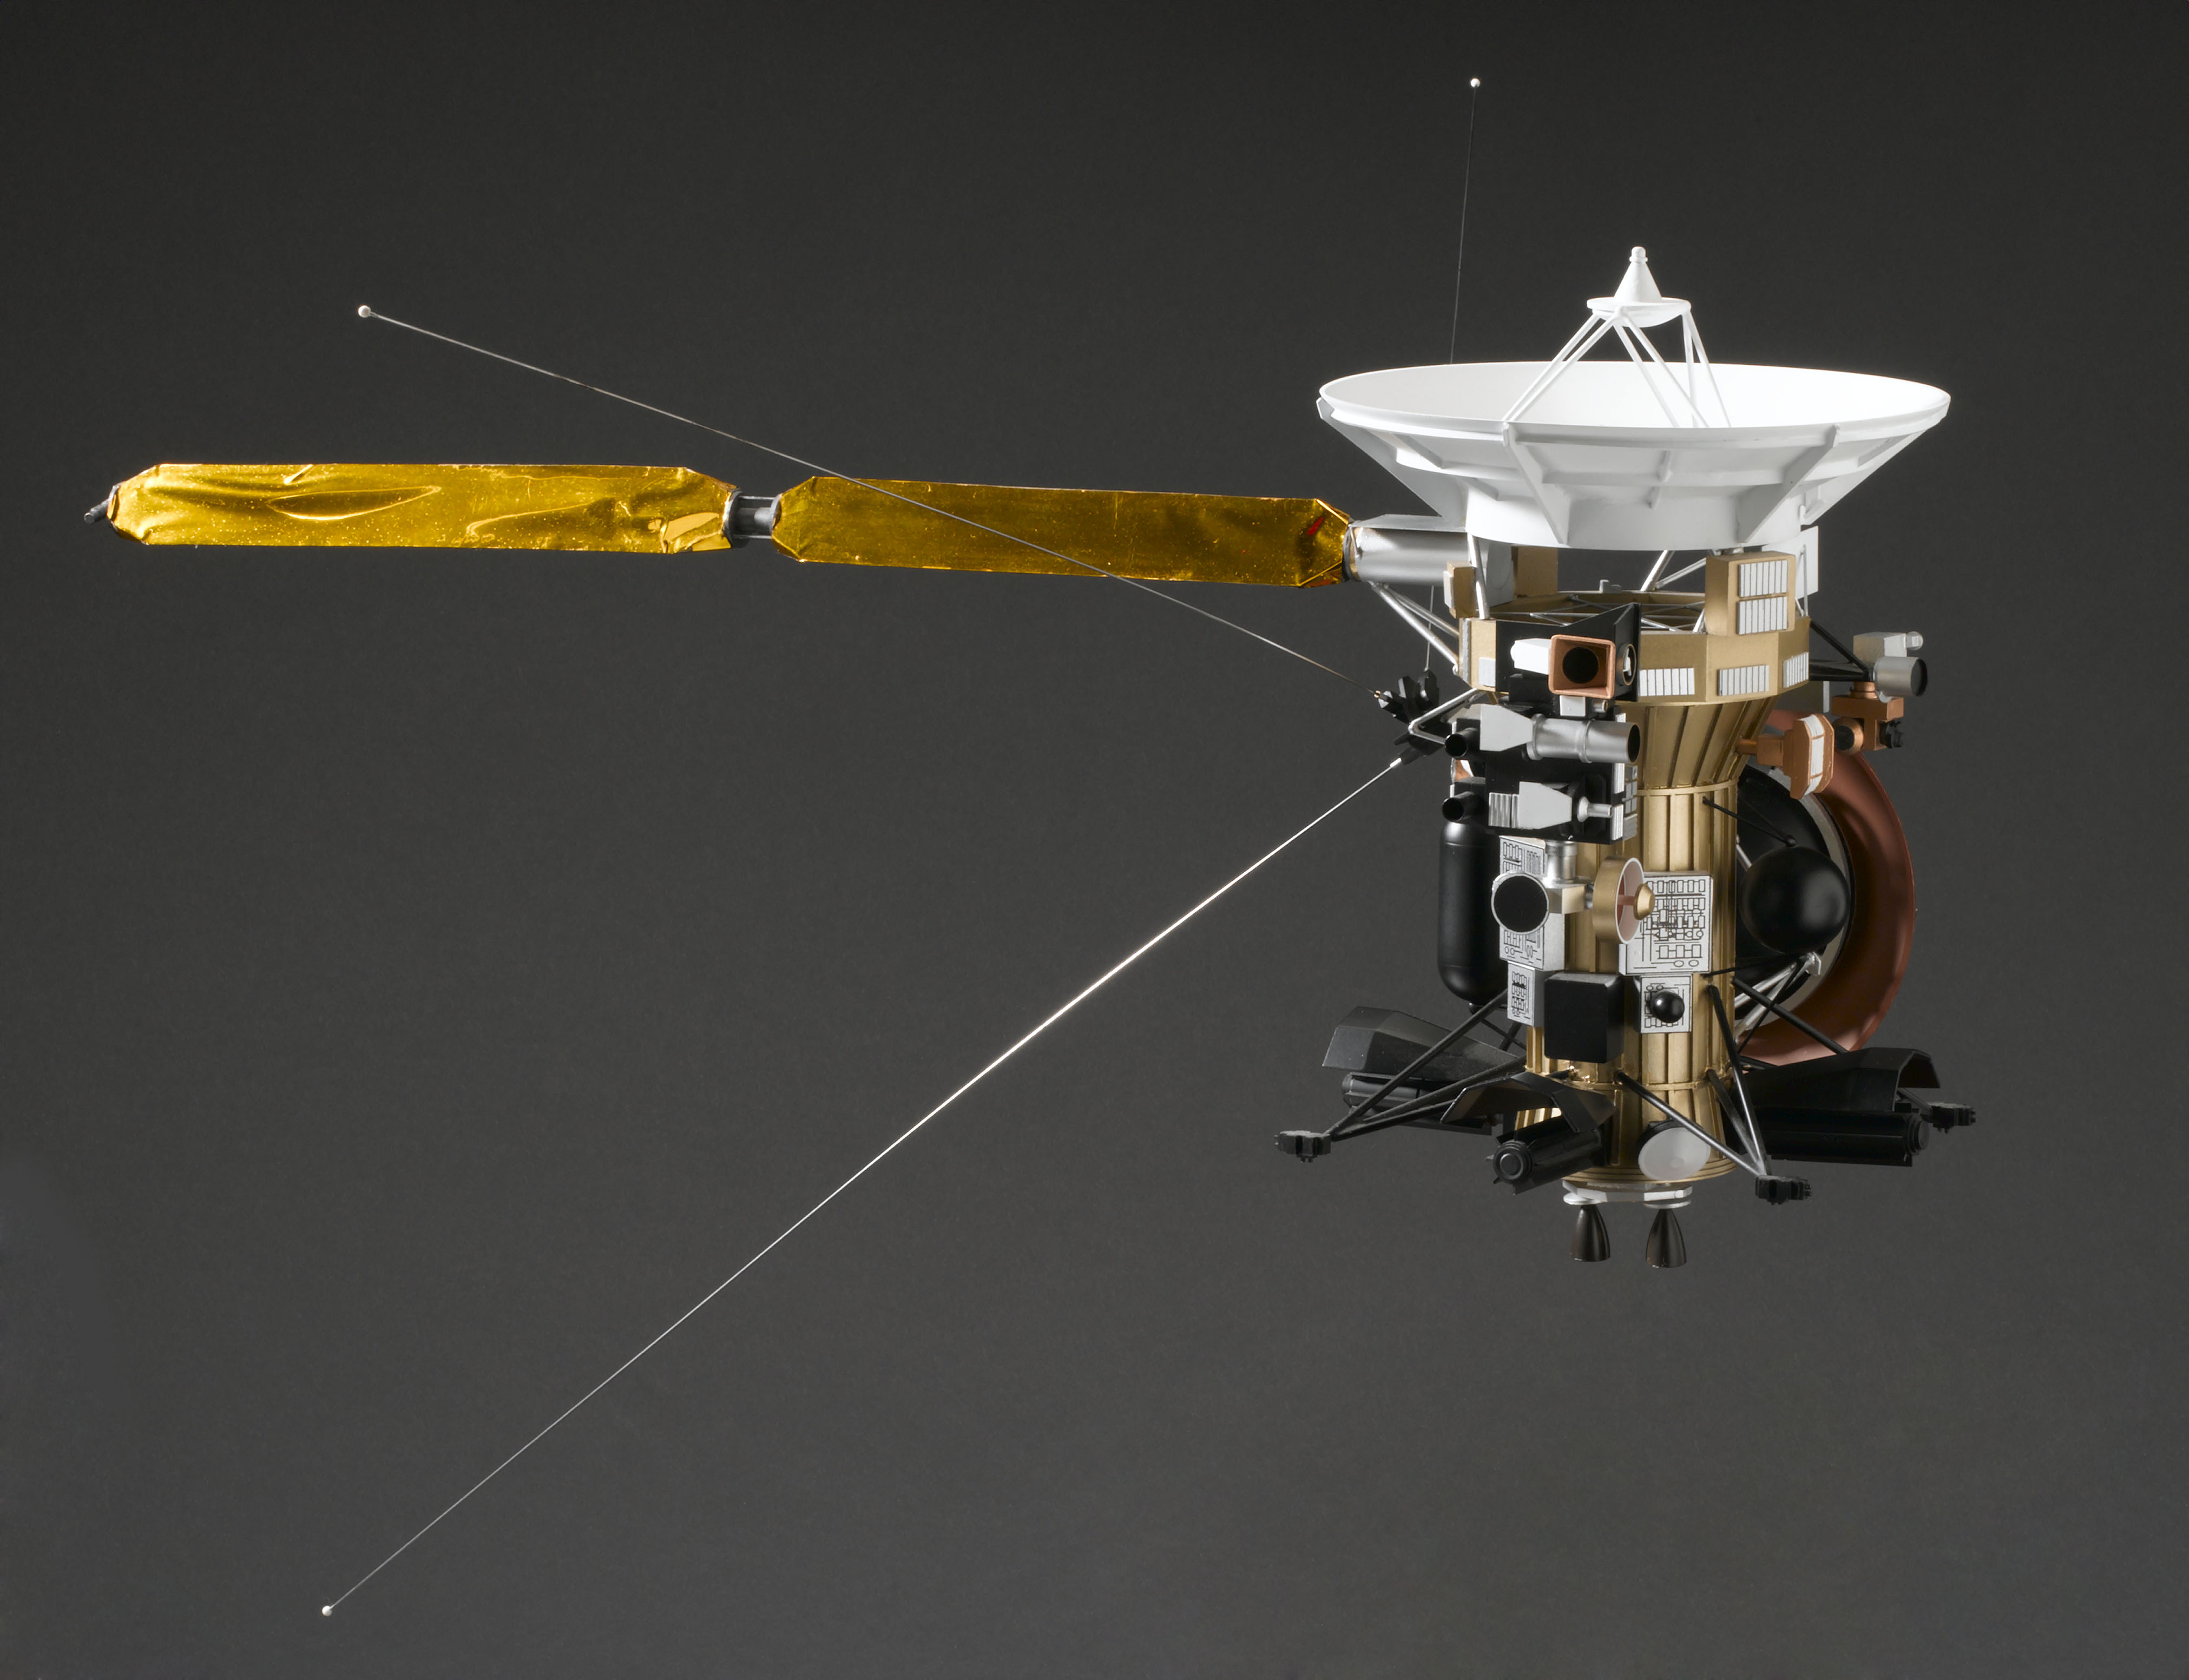 This picture shows a 1:25 scale model of the Cassini spacecraft.